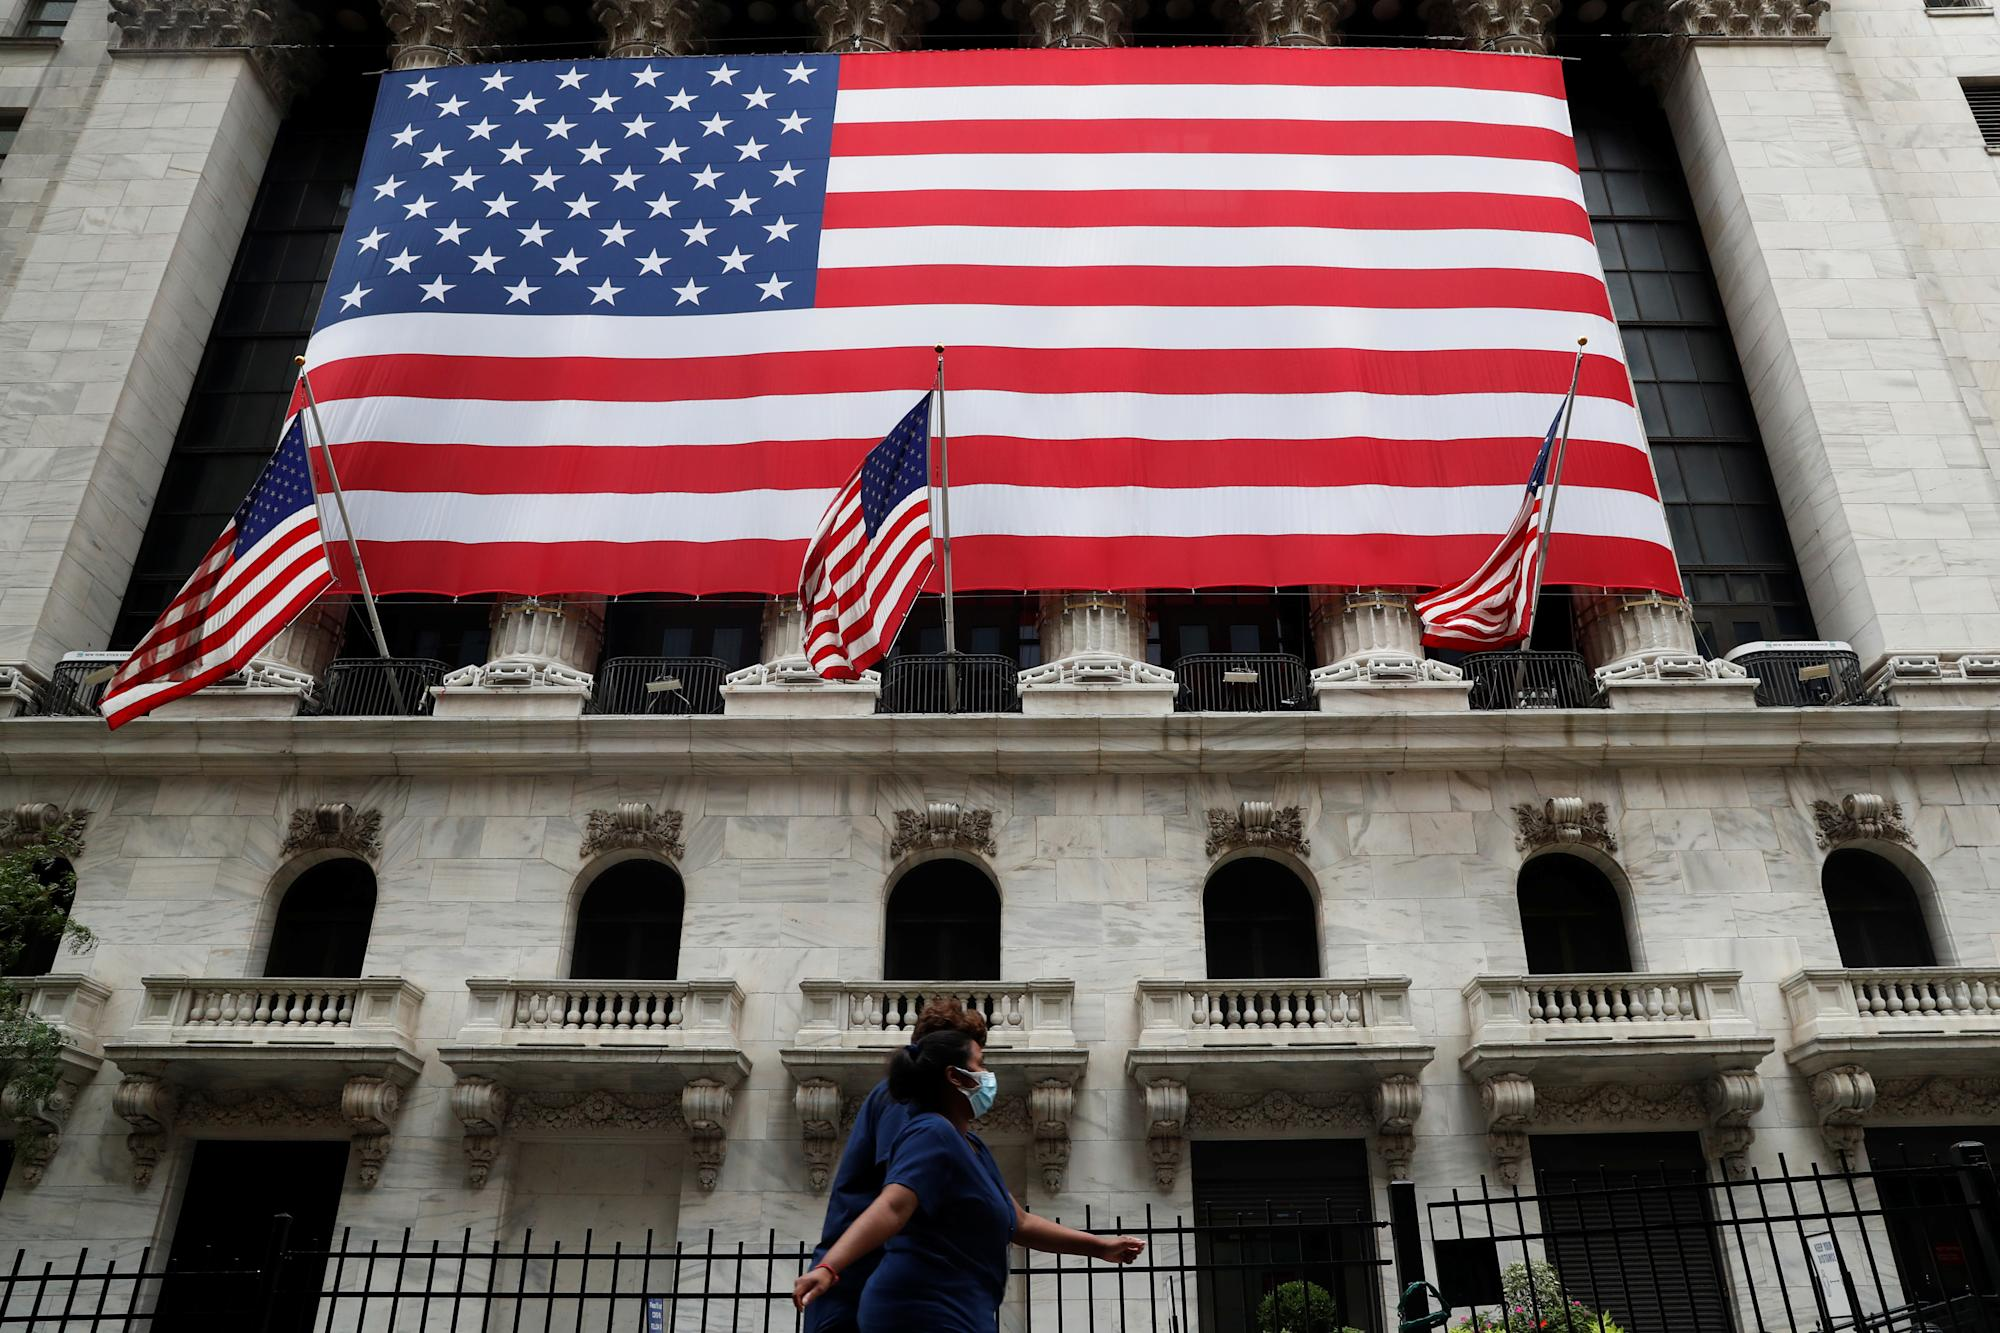 stock-market-news-live-updates:-stocks-rise,-shaking-off-capital-gains-tax-increase-concerns